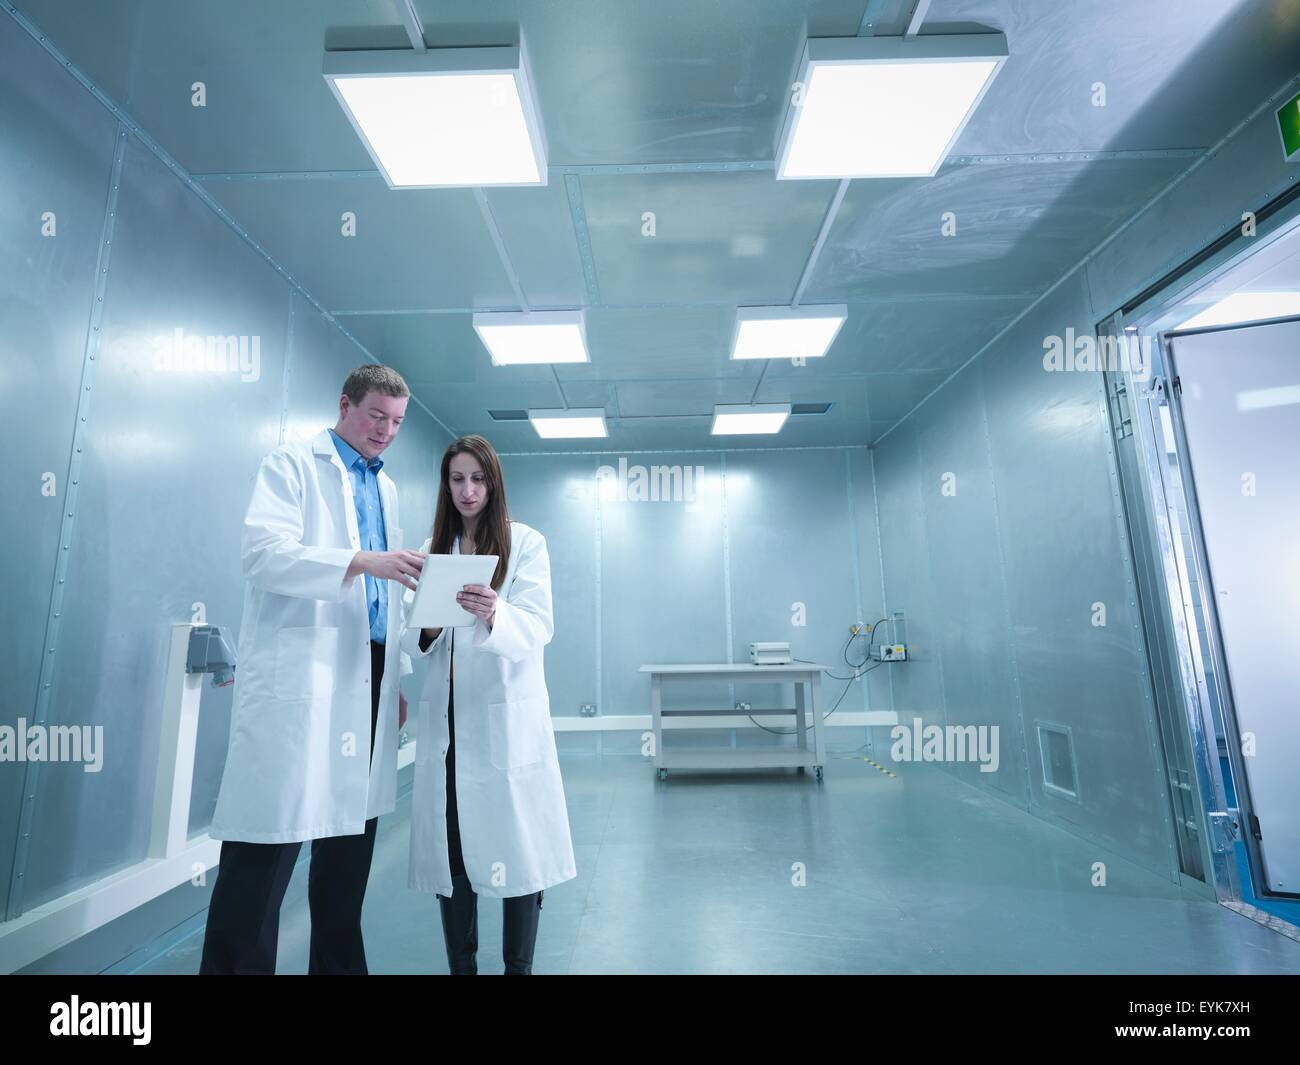 Radio frequency engineers in a screened room - Stock Image